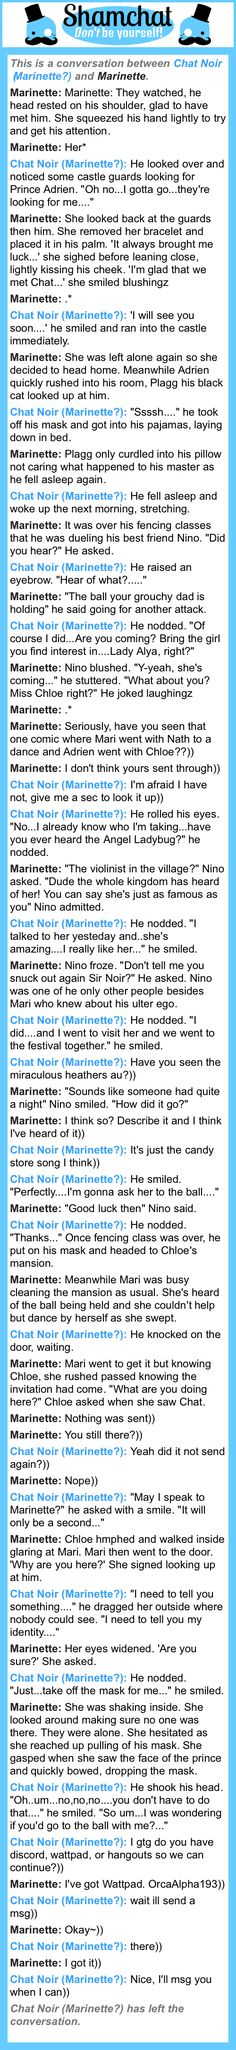 A conversation between Marinette and Chat Noir (Marinette?)